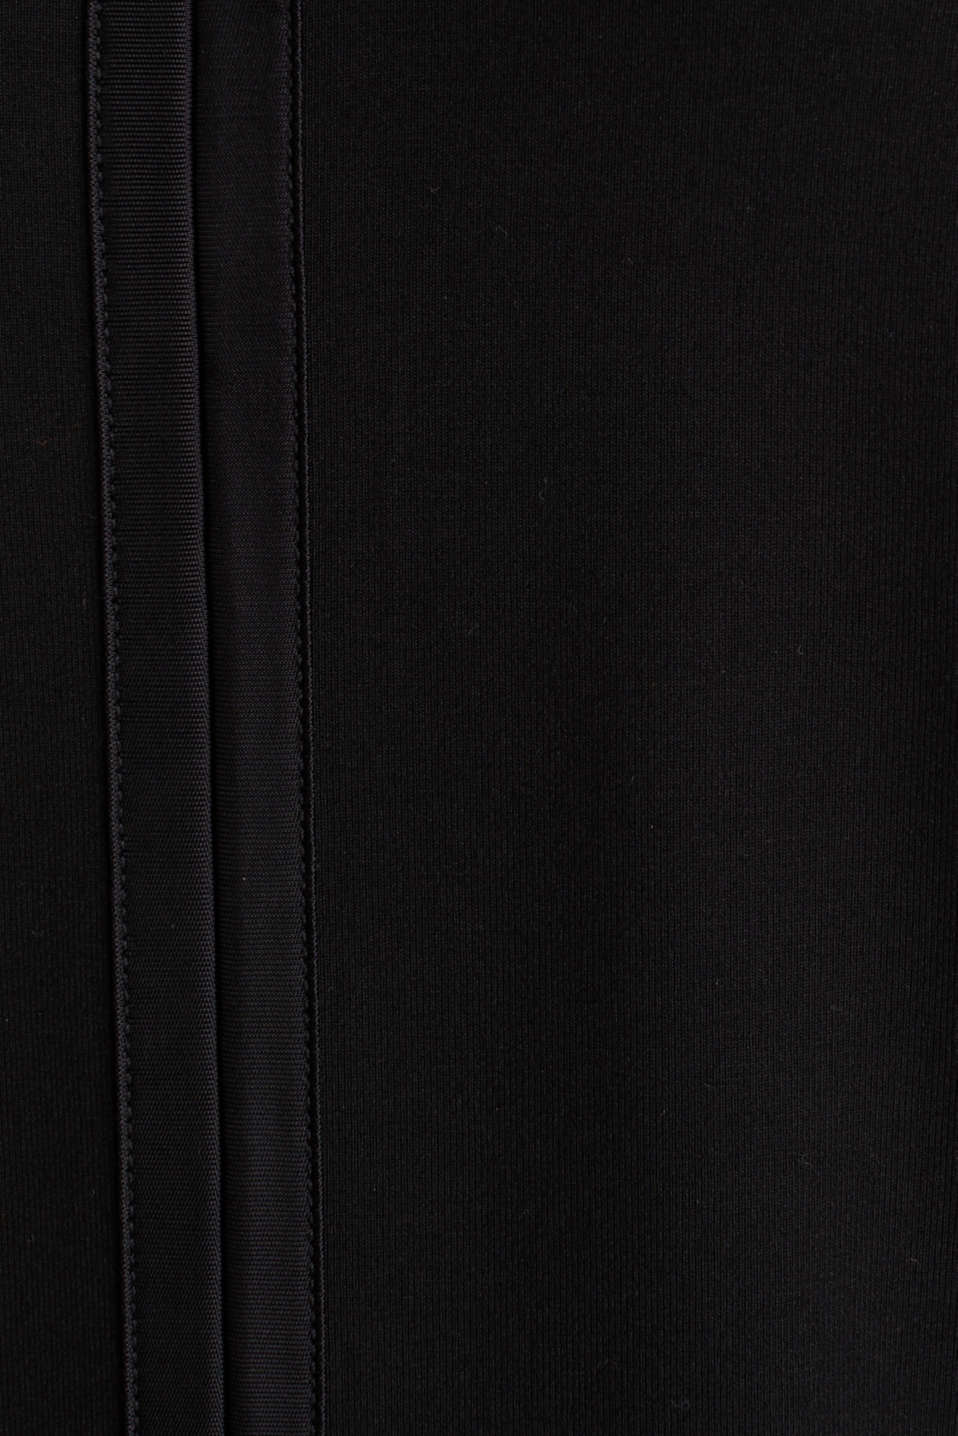 Stretchy tank top with satin details, BLACK, detail image number 3